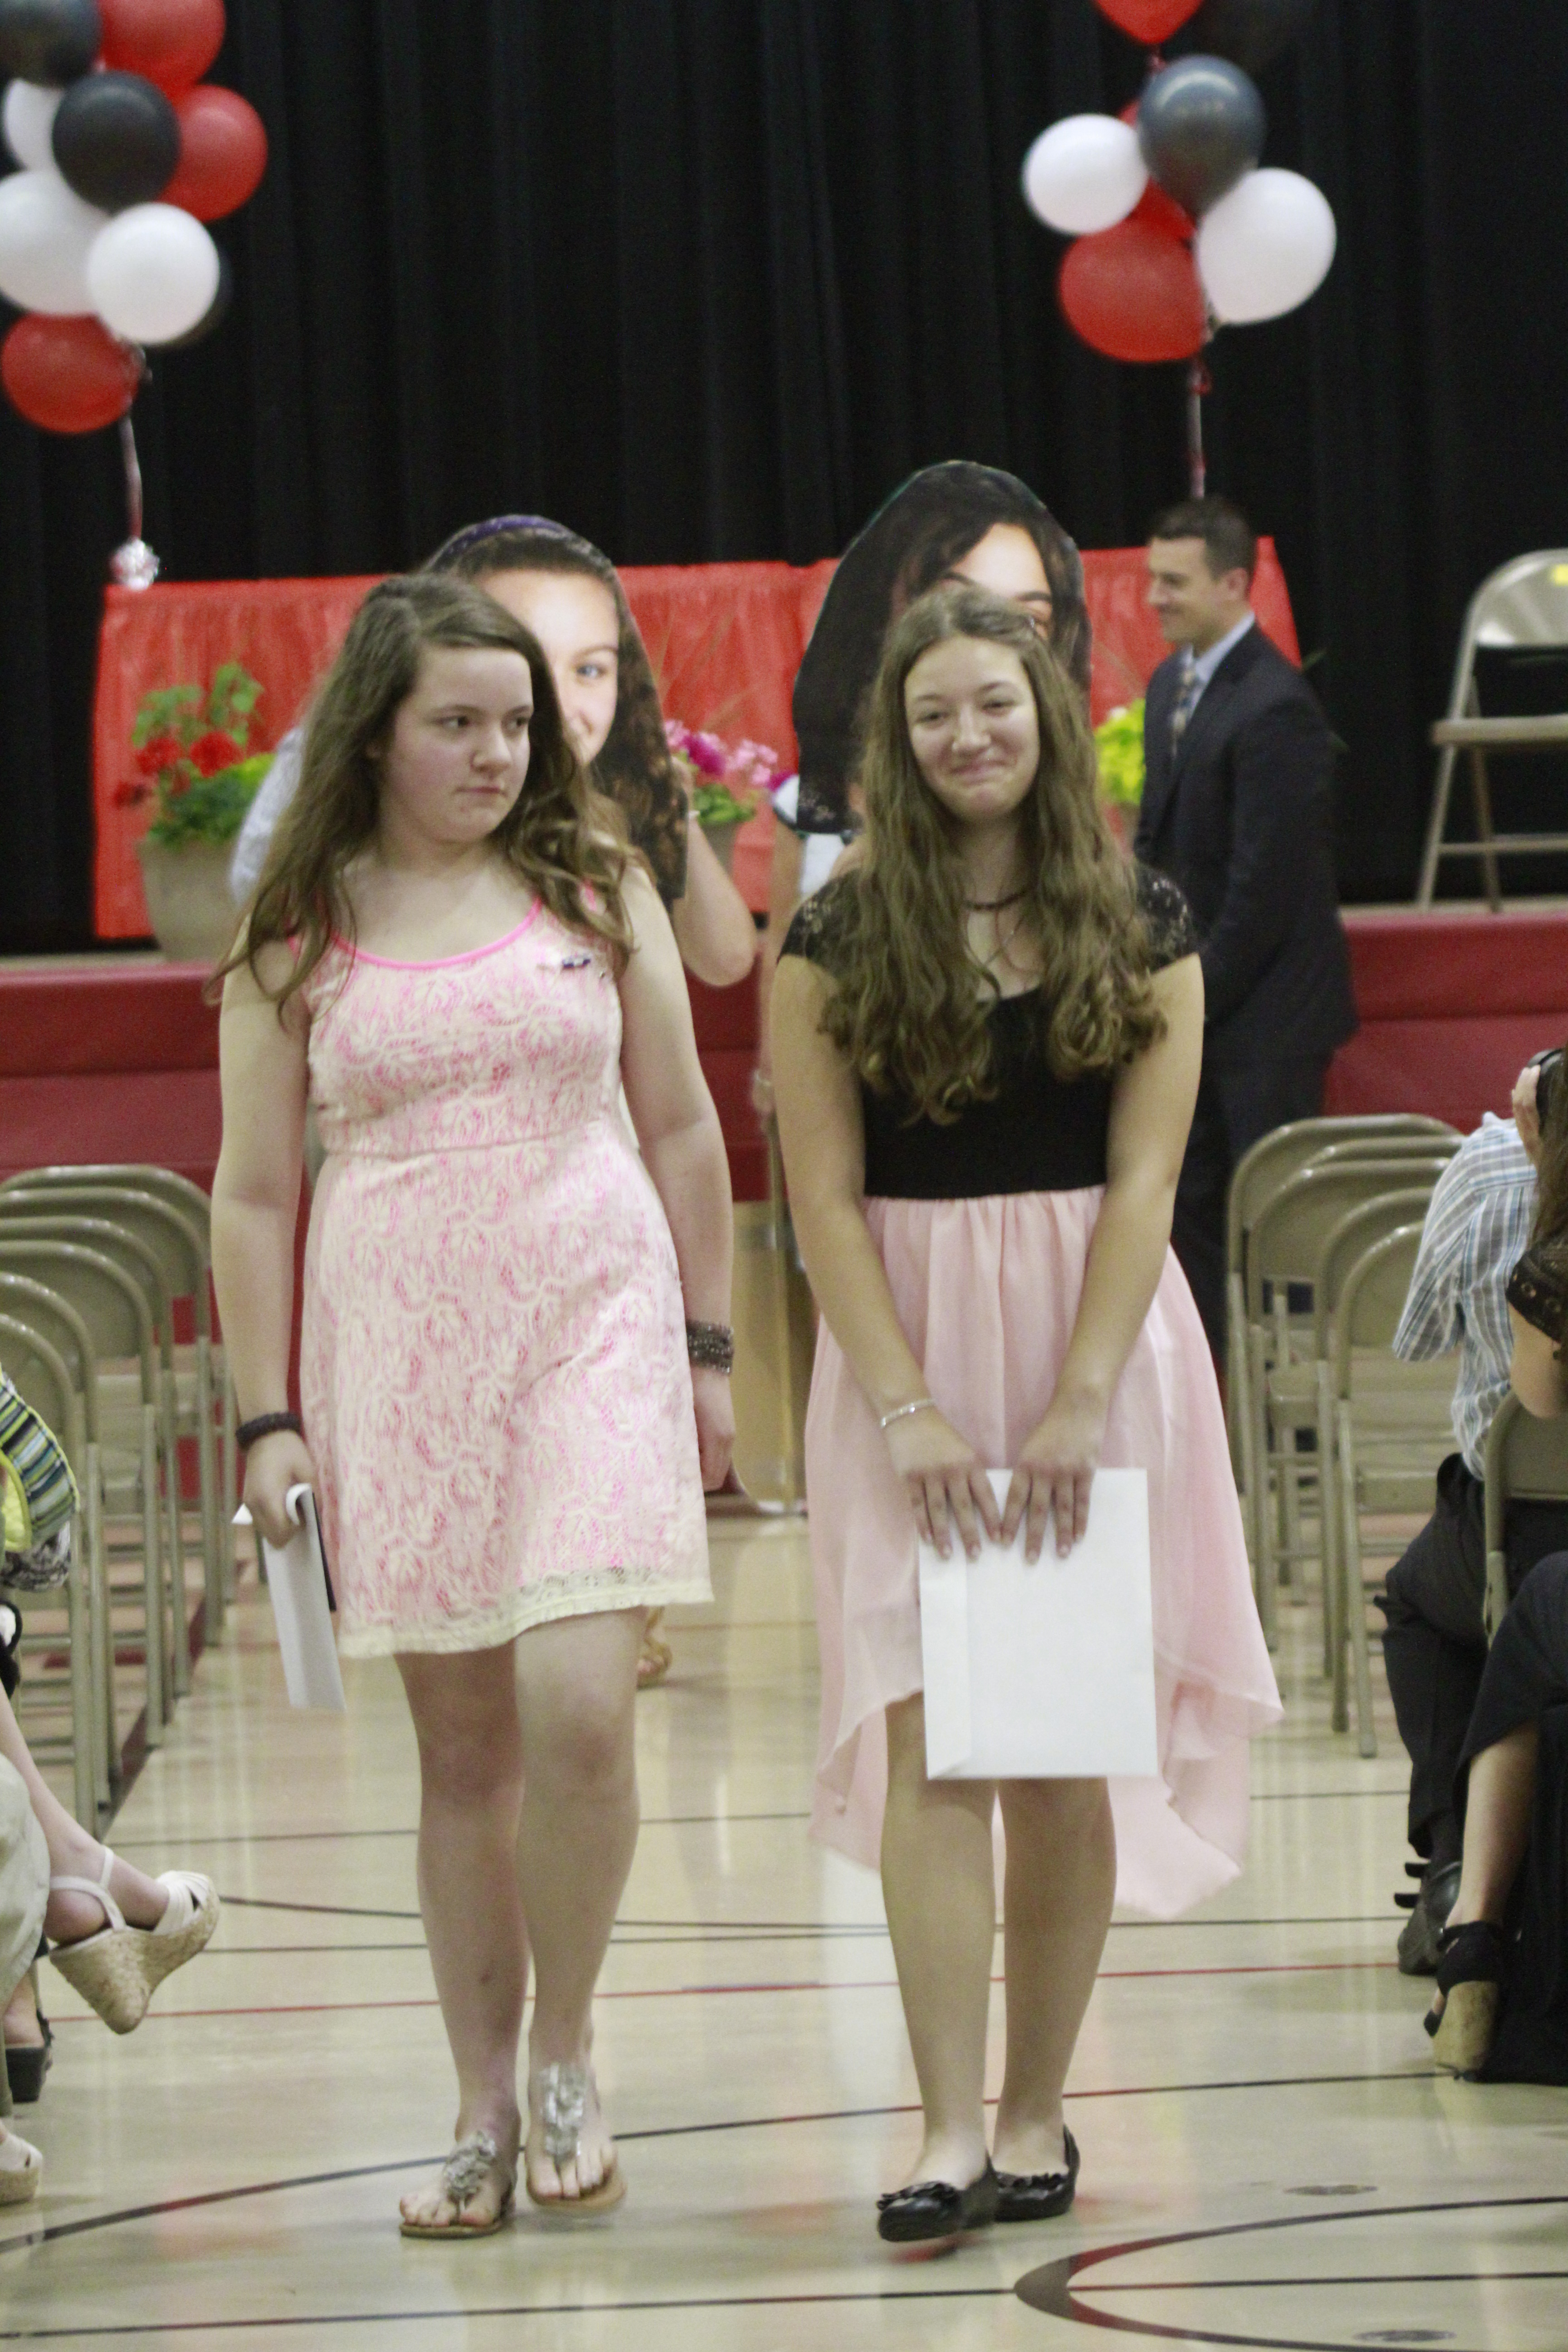 Lackawanna Trail Sixth Grade Students Were Honored At Their Graduation Recognition Ceremony